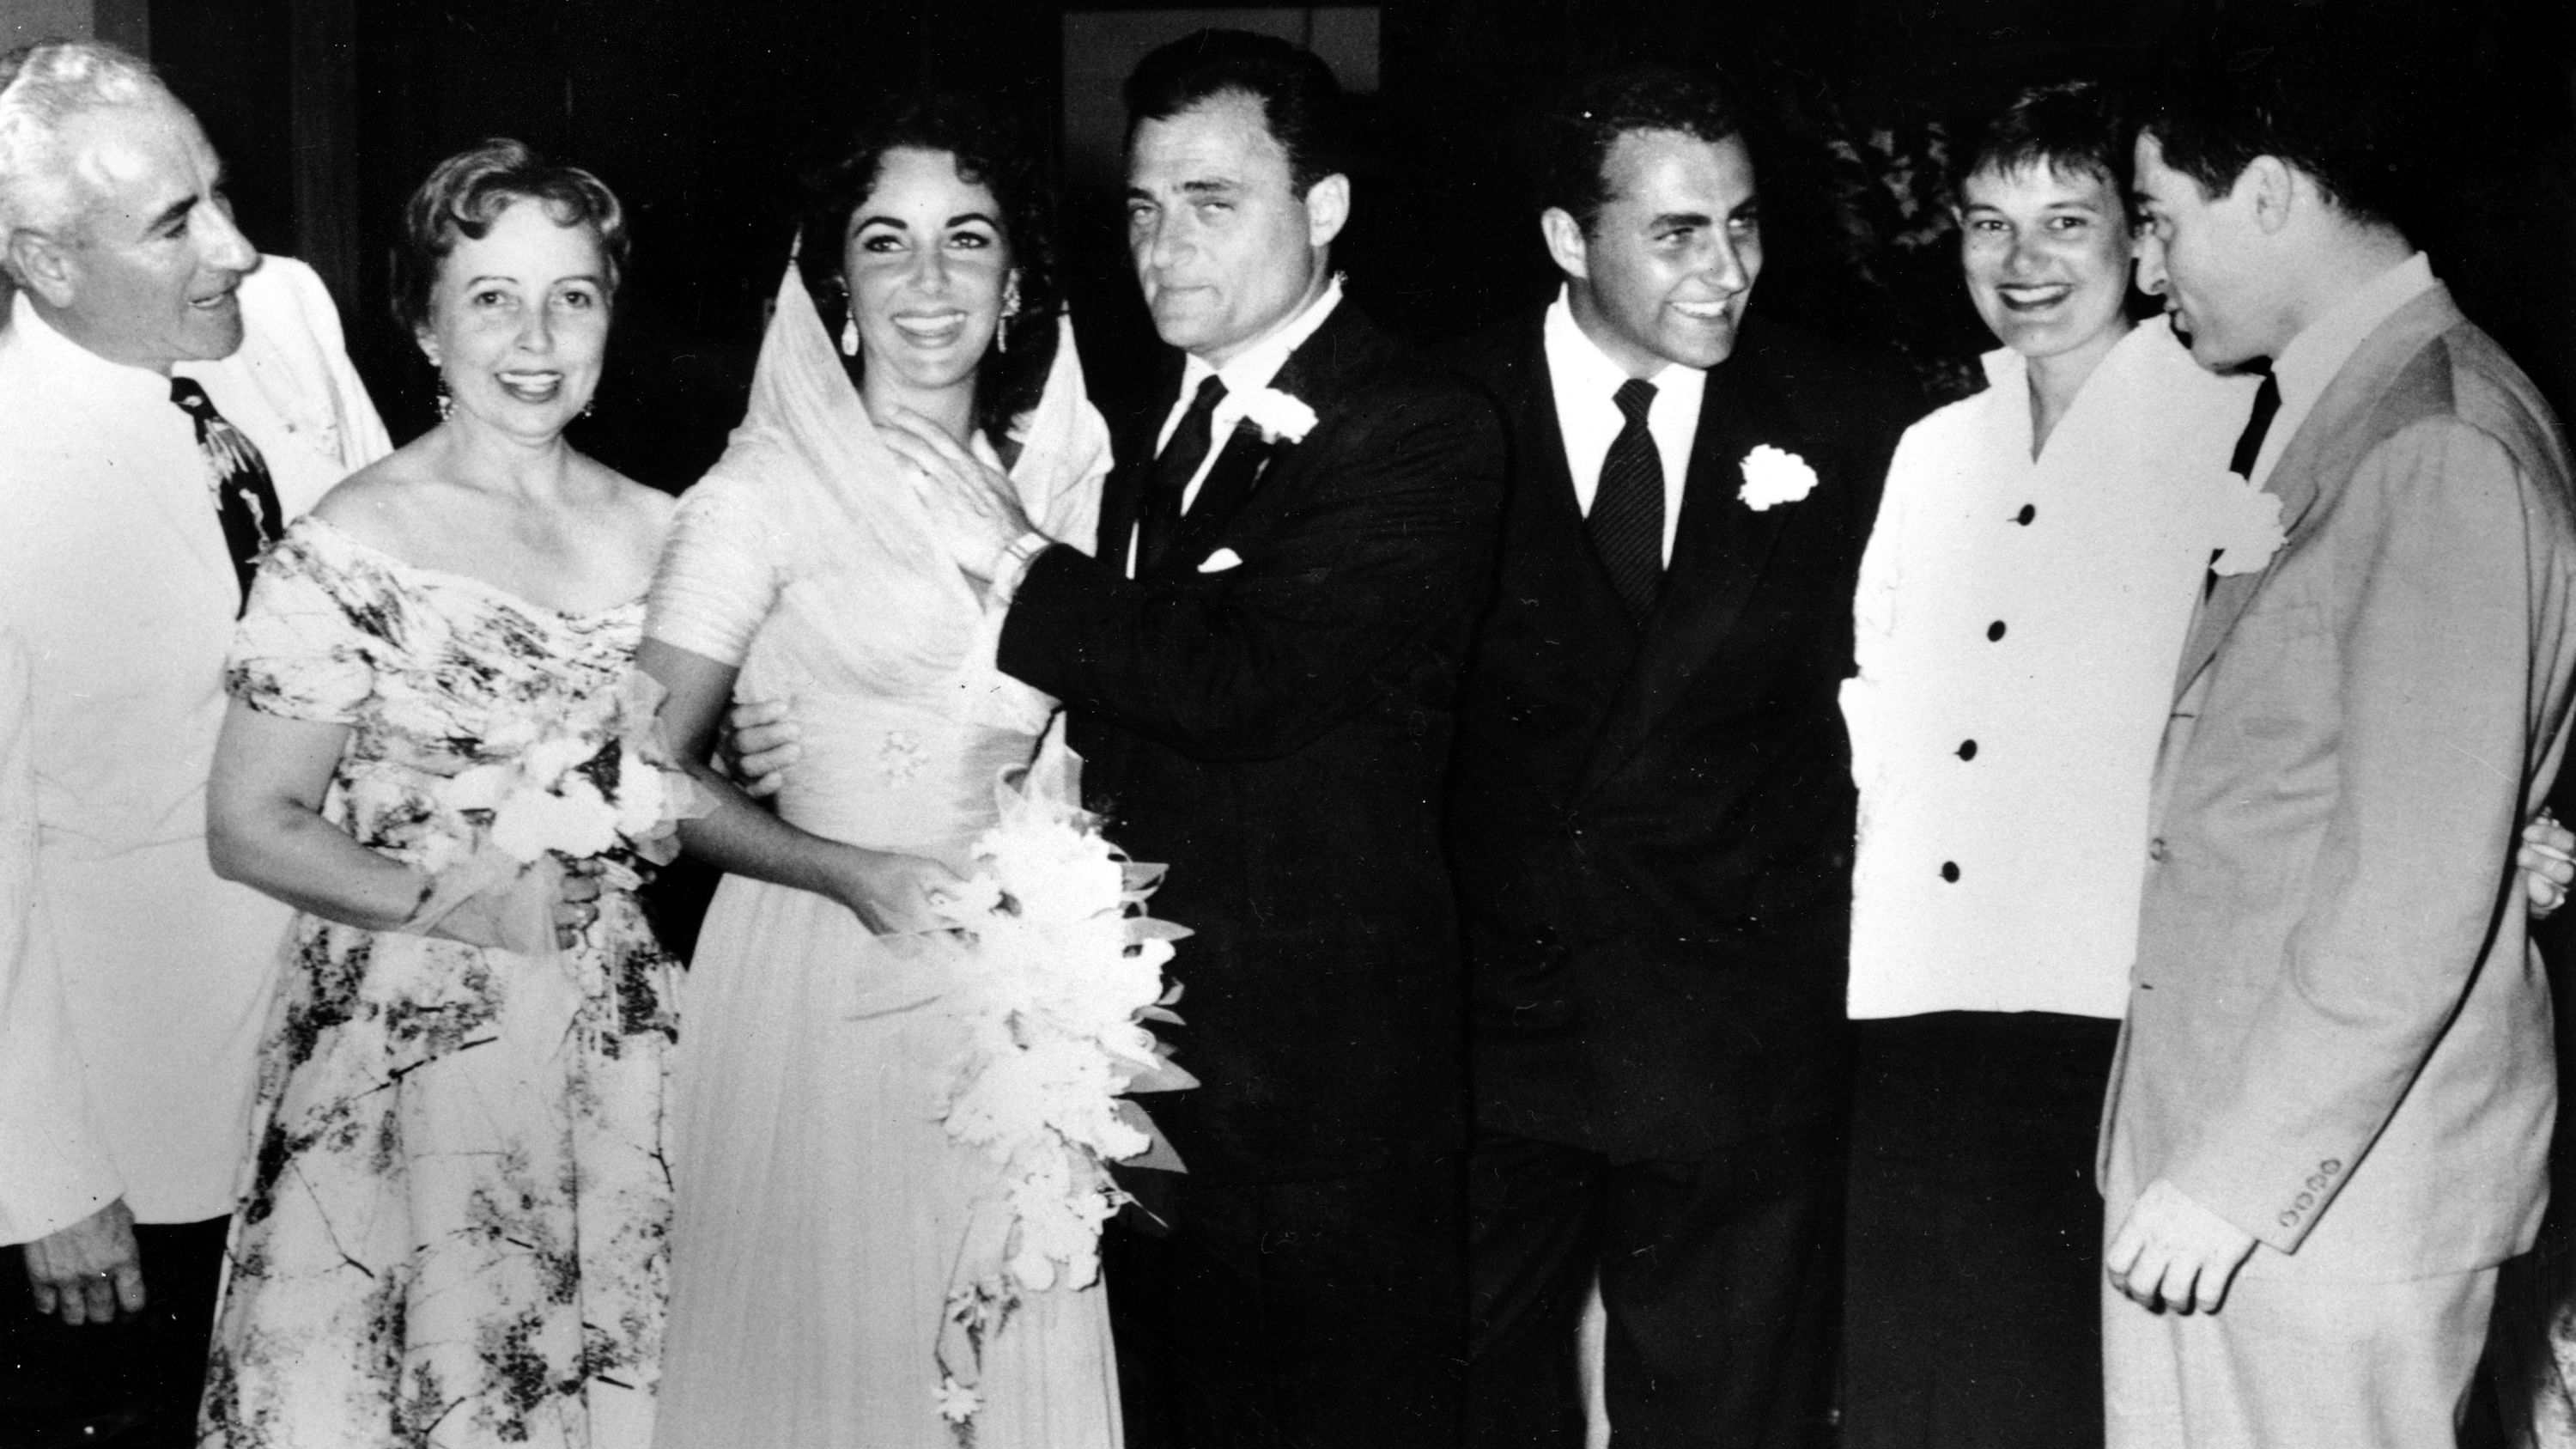 Actress Elizabeth Taylor and film producer Michael Todd pose with their family after their wedding in Acapulco, Mexico on Feb. 3, 1957. From left to right are, Mr. and Mrs. Francis Taylor, her parents; Taylor and Todd; her brother Howard Taylor and his wife; and Mike Todd, Jr. (AP Photo)